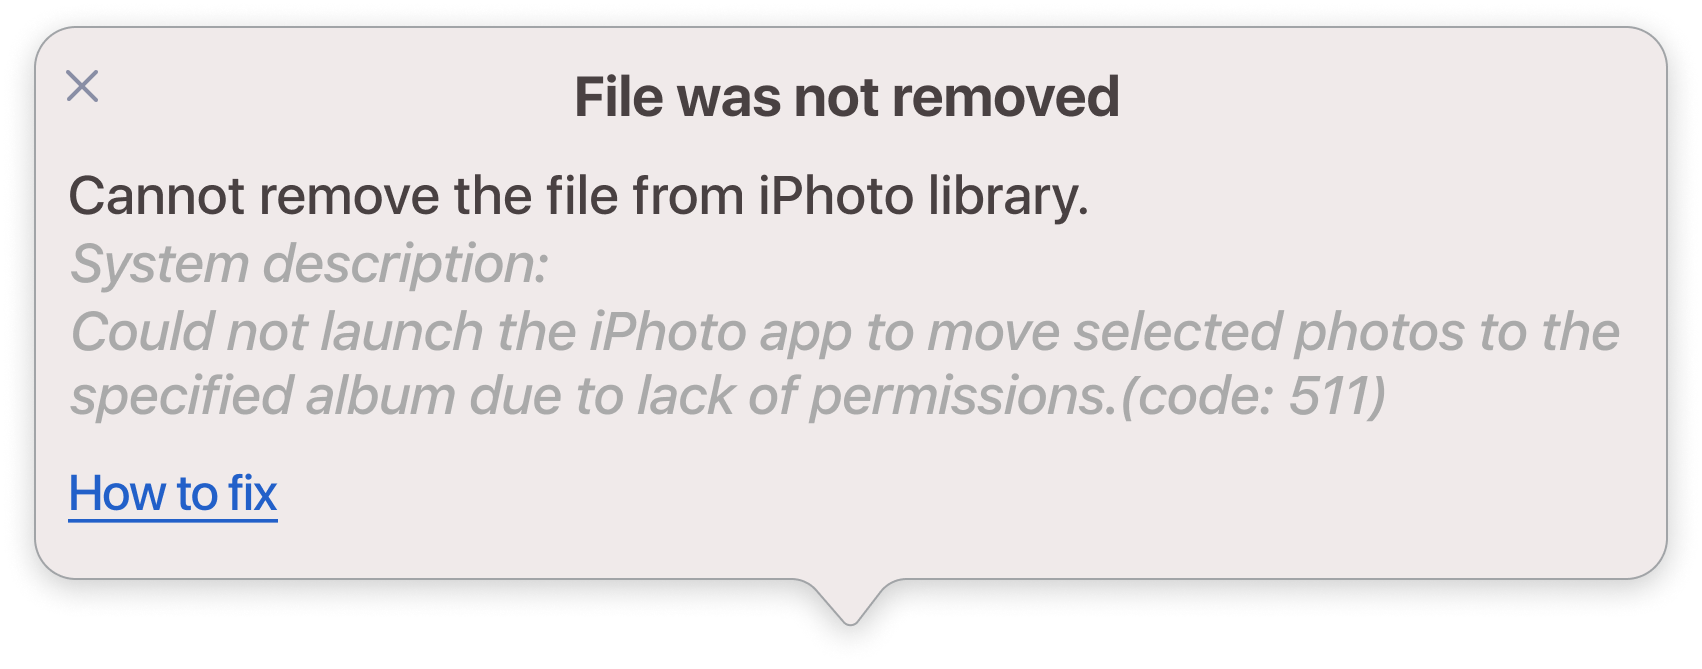 file was not removed